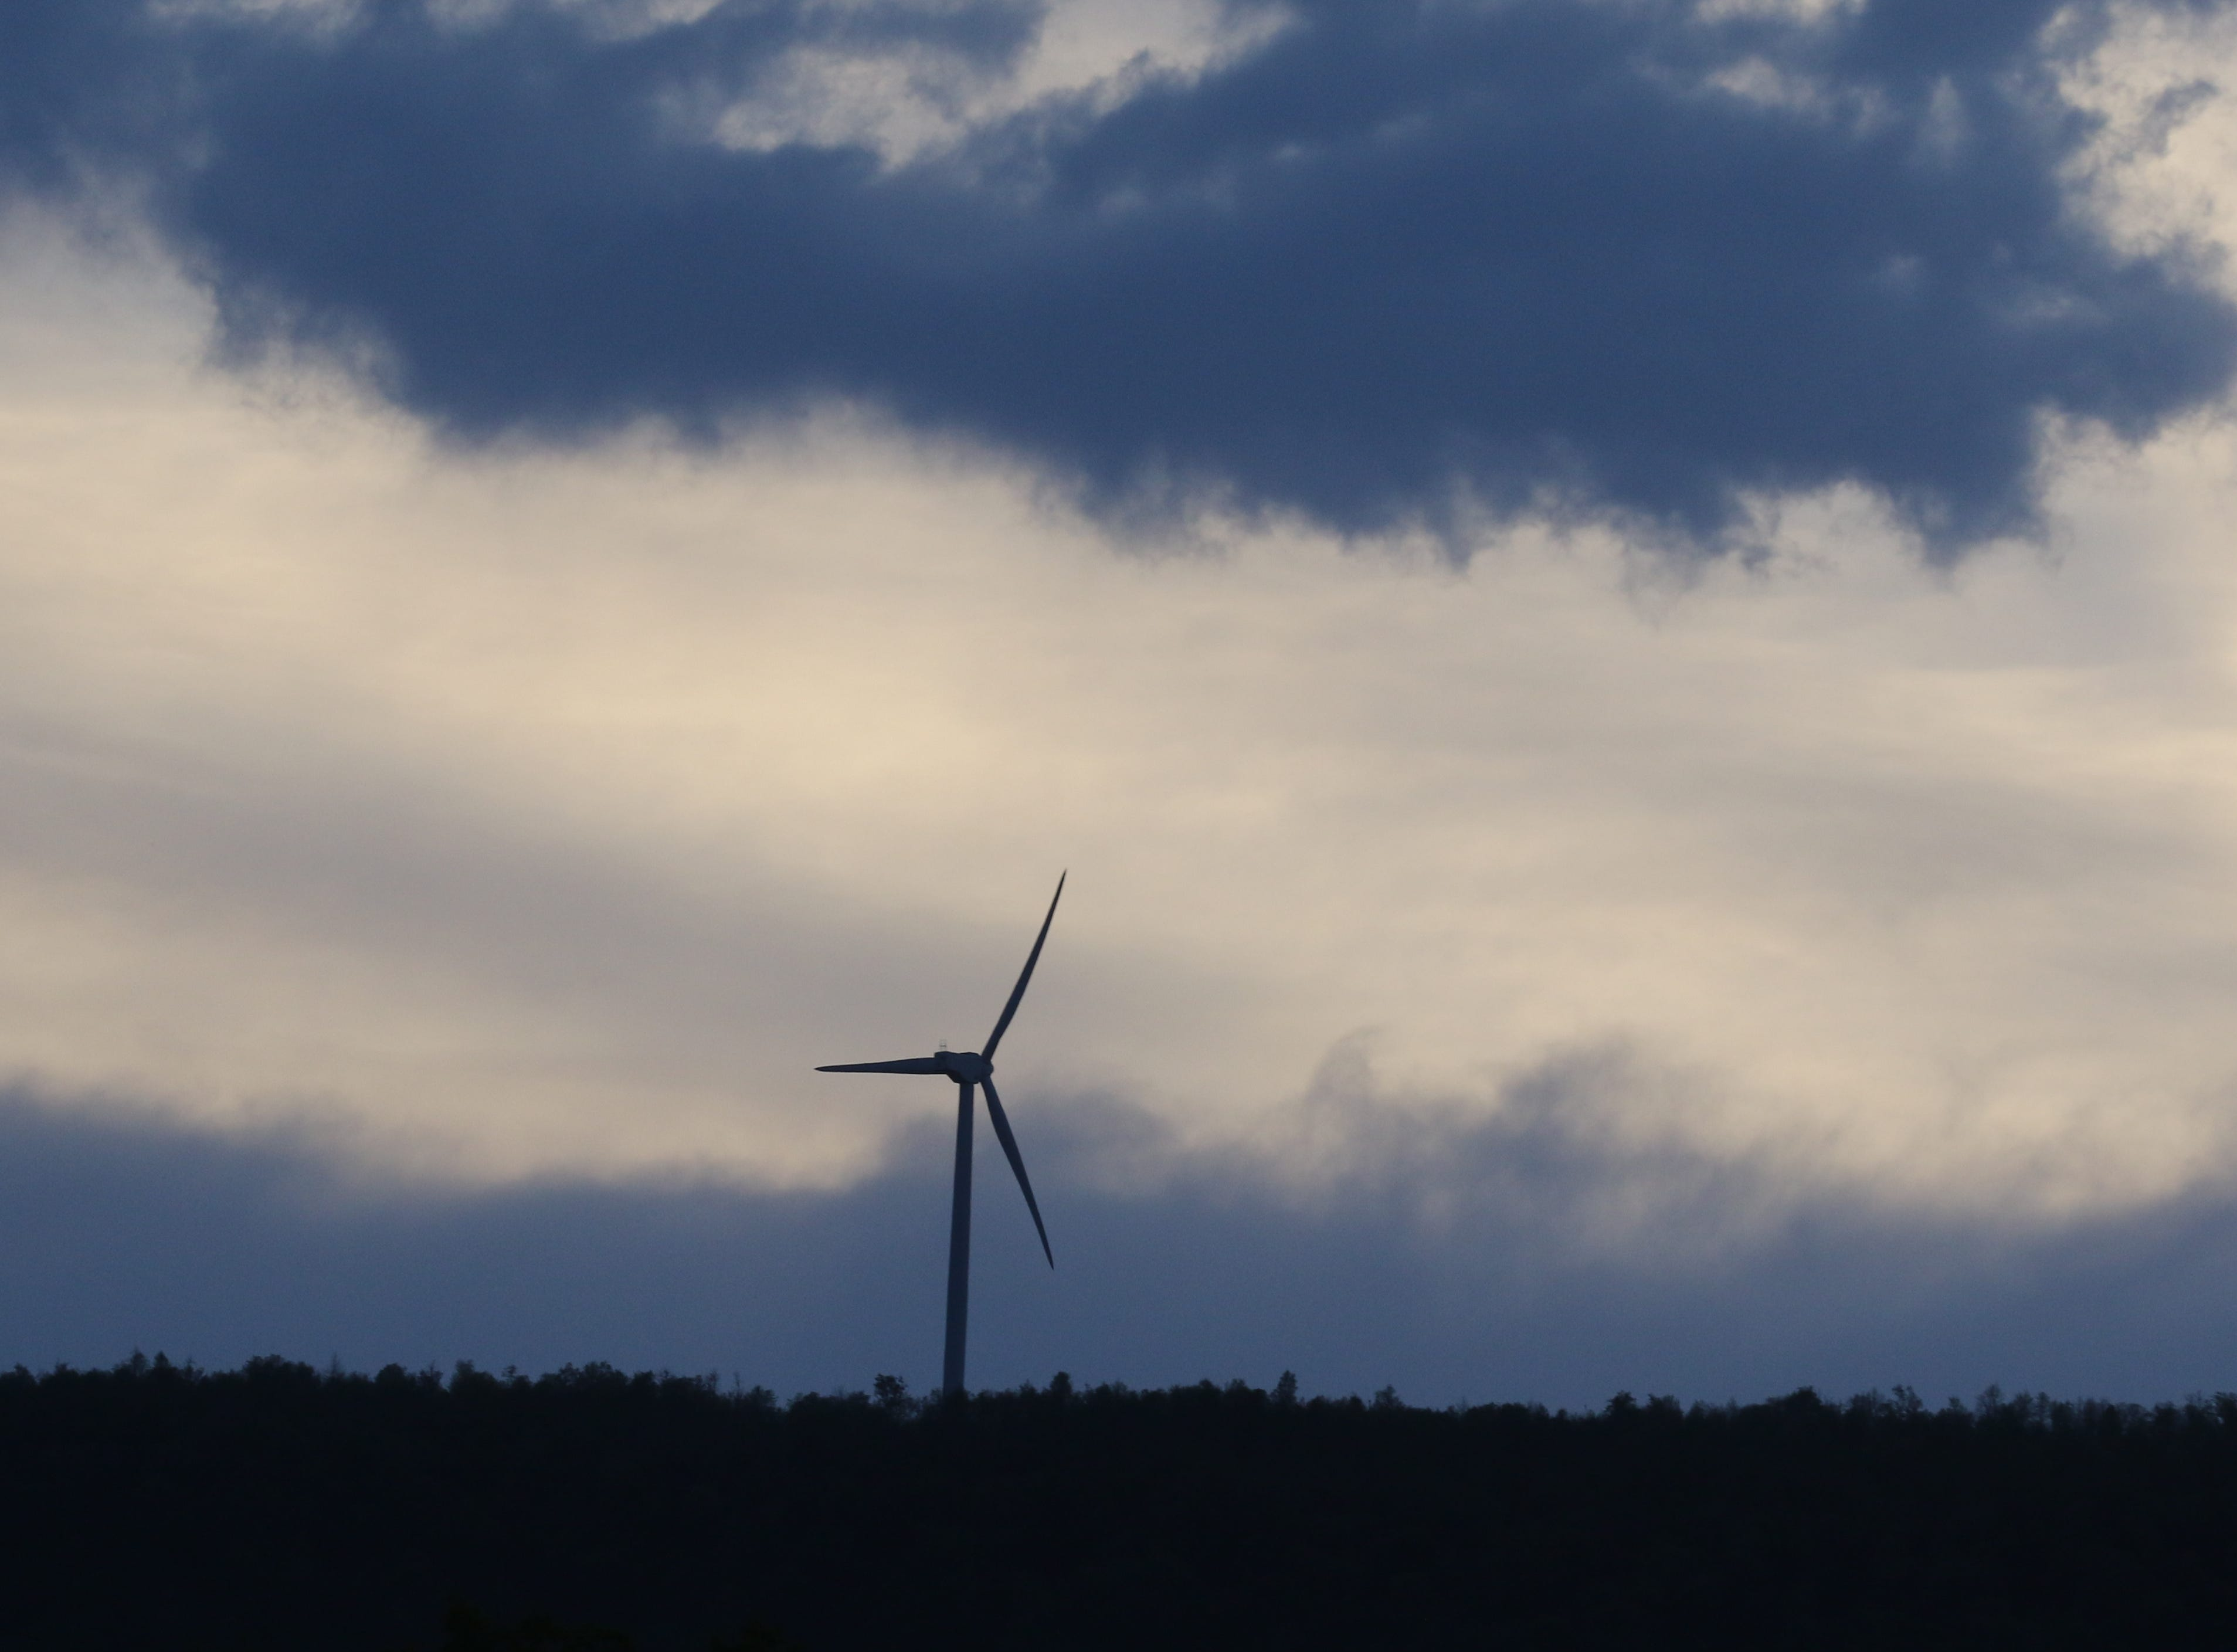 Once Keyser was in the heart of coal country, and today 23 windmills are on a ridge overlooking the town.